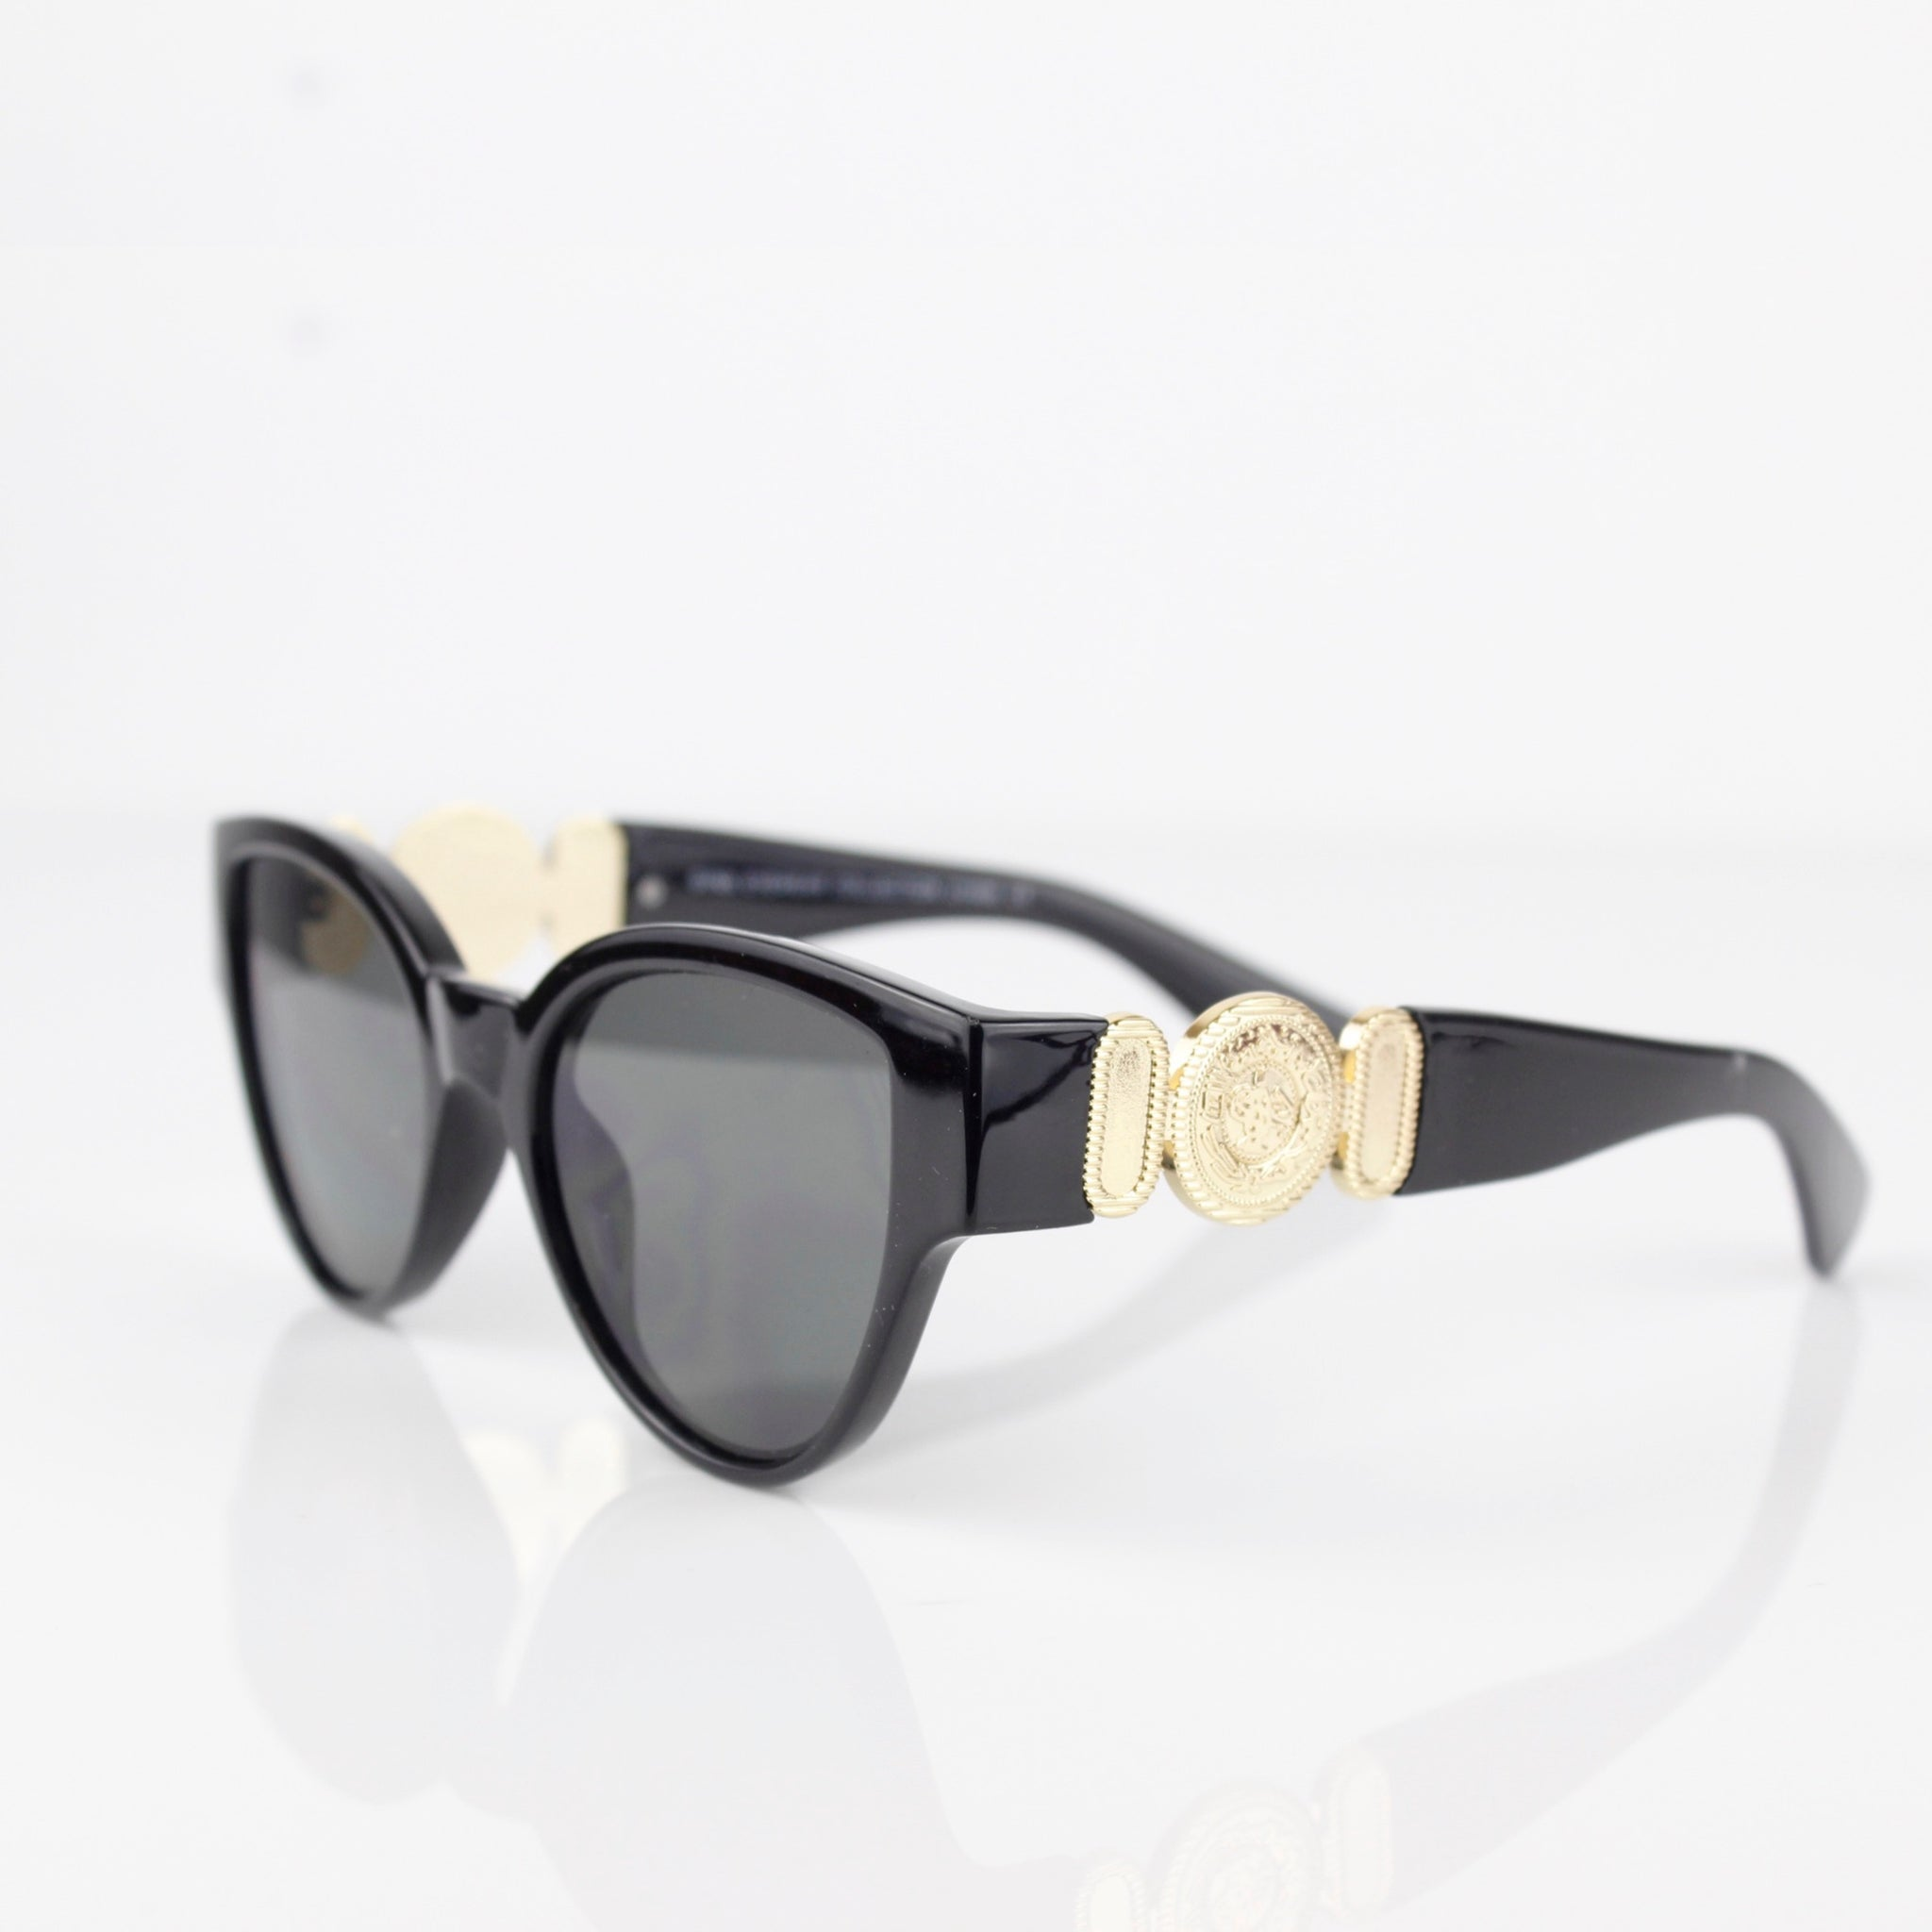 BLACK FRAME WITH GOLD MADALLION SUNGLASSES - svnx